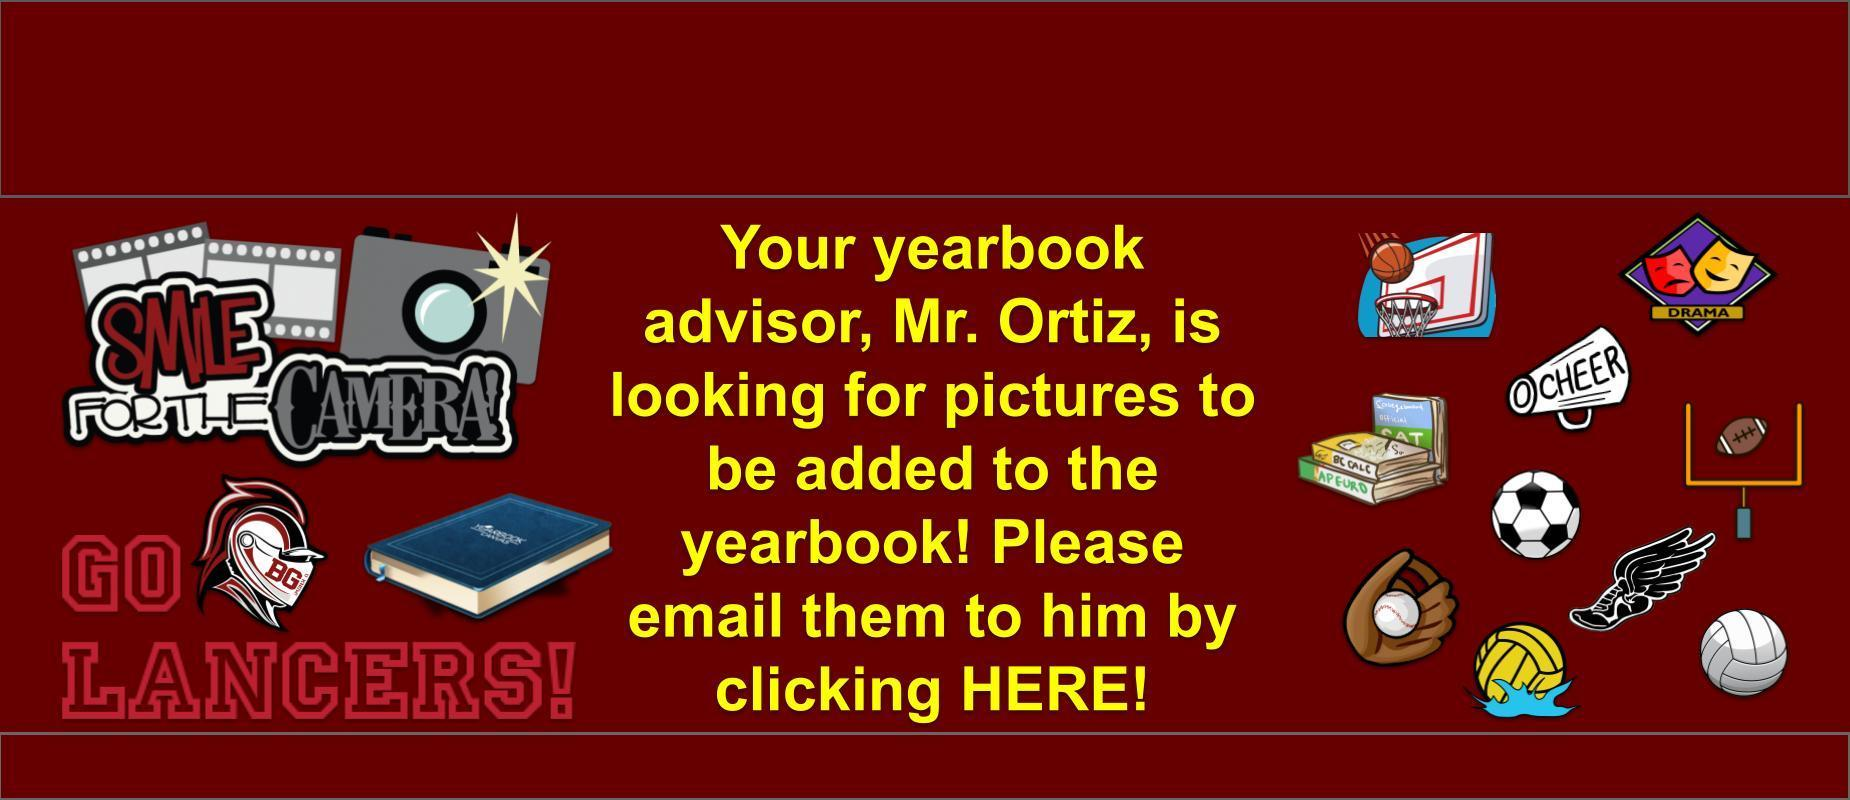 add pictures to our yearbook! email Javier Ortiz